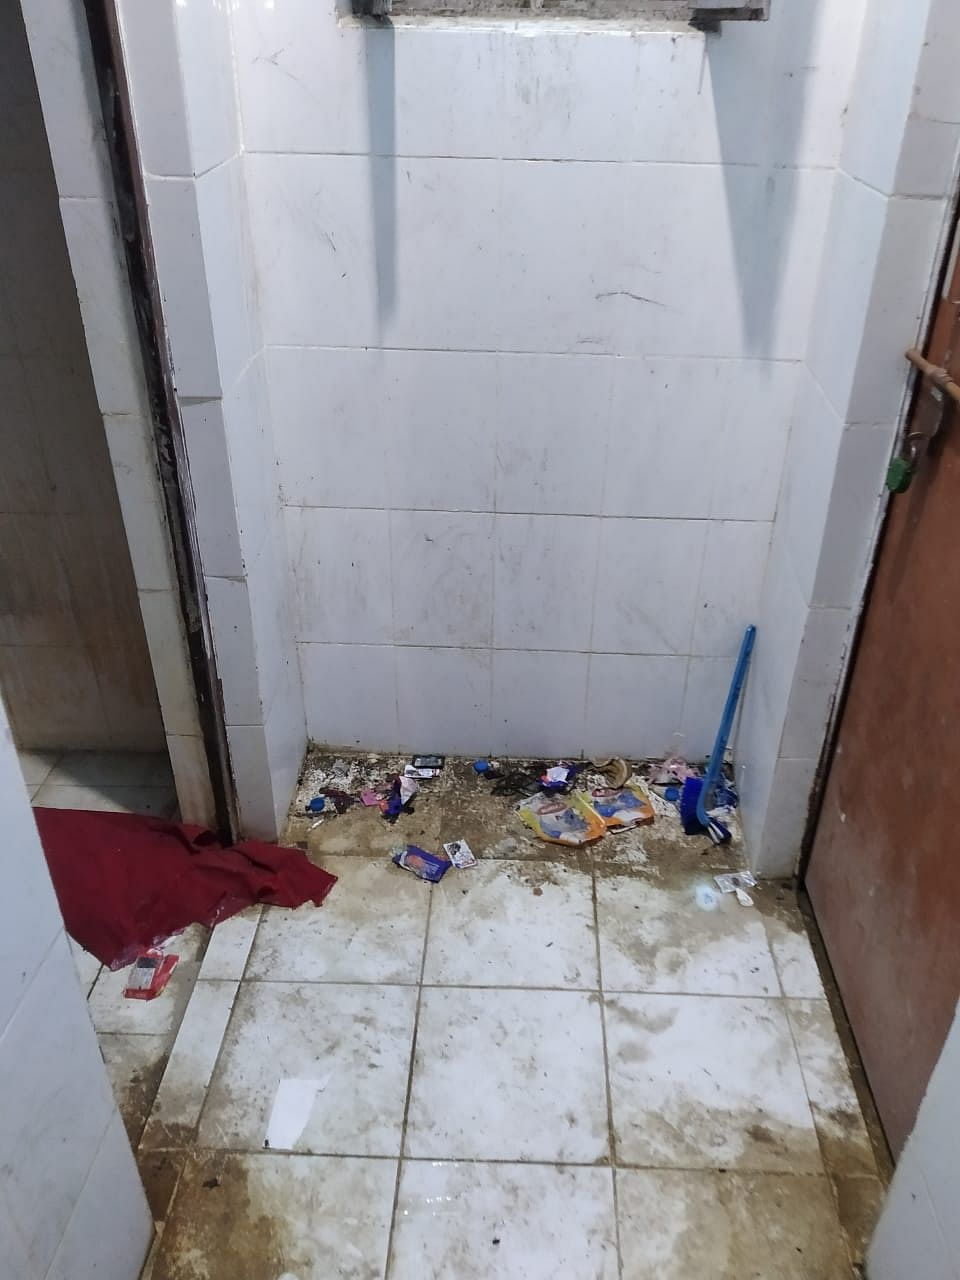 State of bathrooms in the ward.